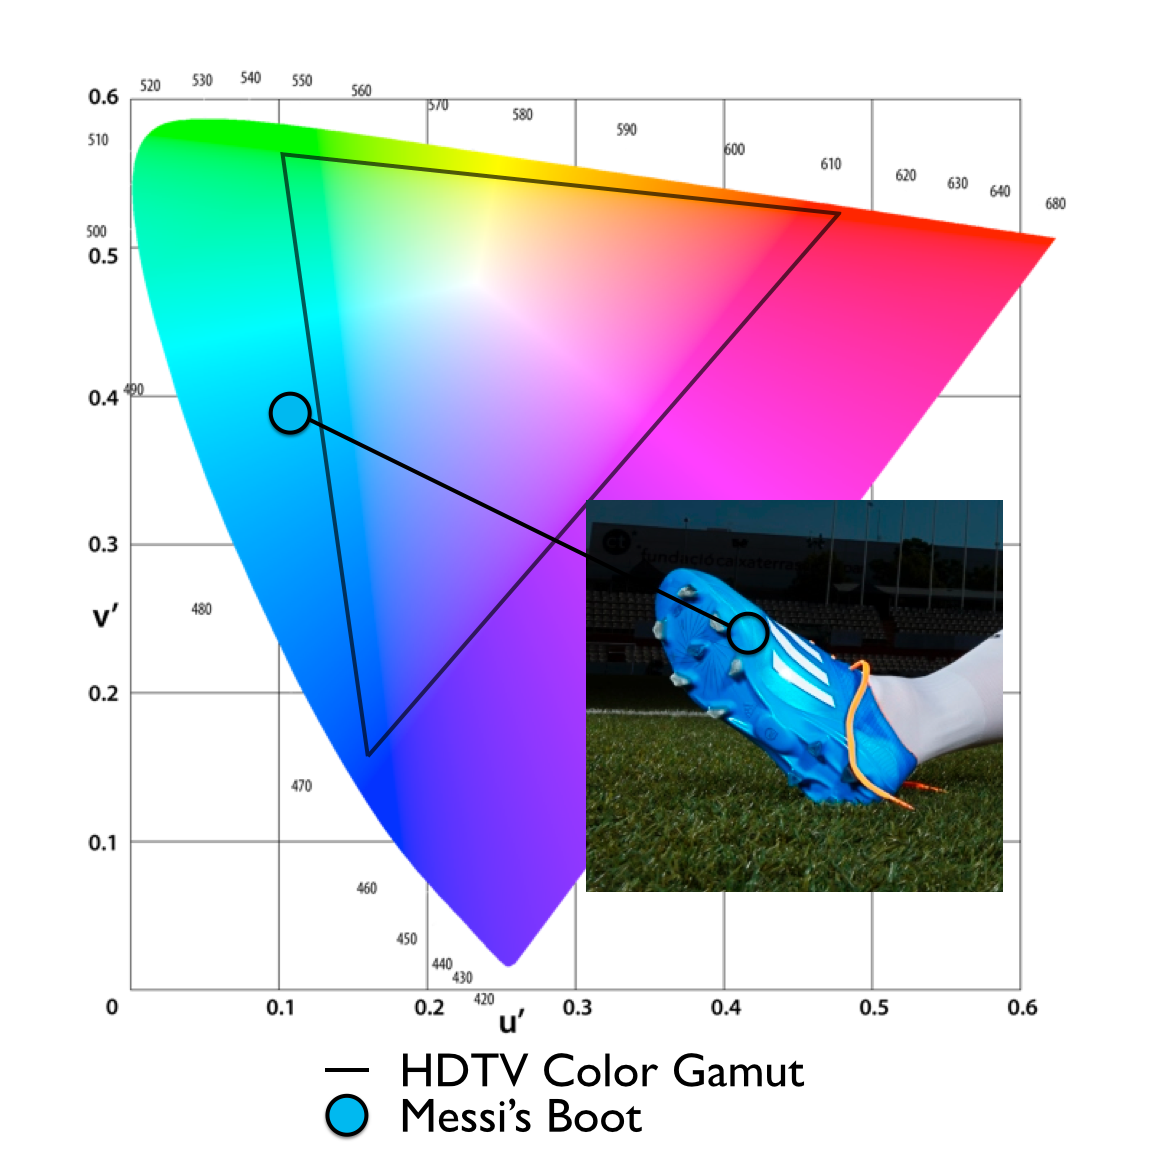 The horseshoe shaped chart above represents the range of colors that our eyes can see and the triangle contains all the colors an HDTV can show. Lionel Messi's blue cleats fall well outside that range so the color you see on your TV is not accurate.